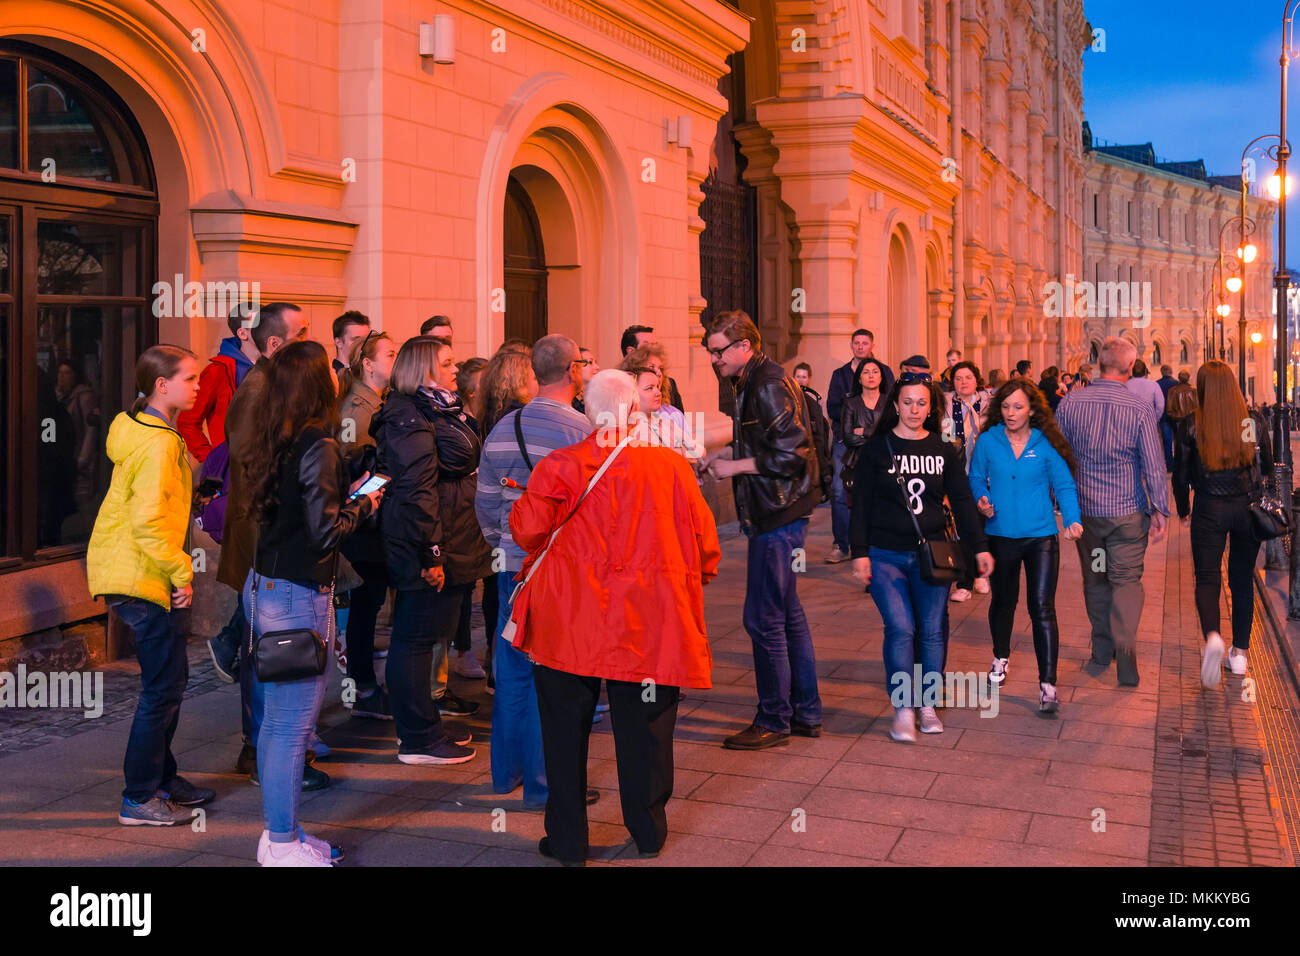 MOSCOW, RUSSIA - APRIL 30, 2018: A guide with a group of tourists near St. Basil's Cathedral on Red Square. Evening, dusk before sunset. - Stock Image